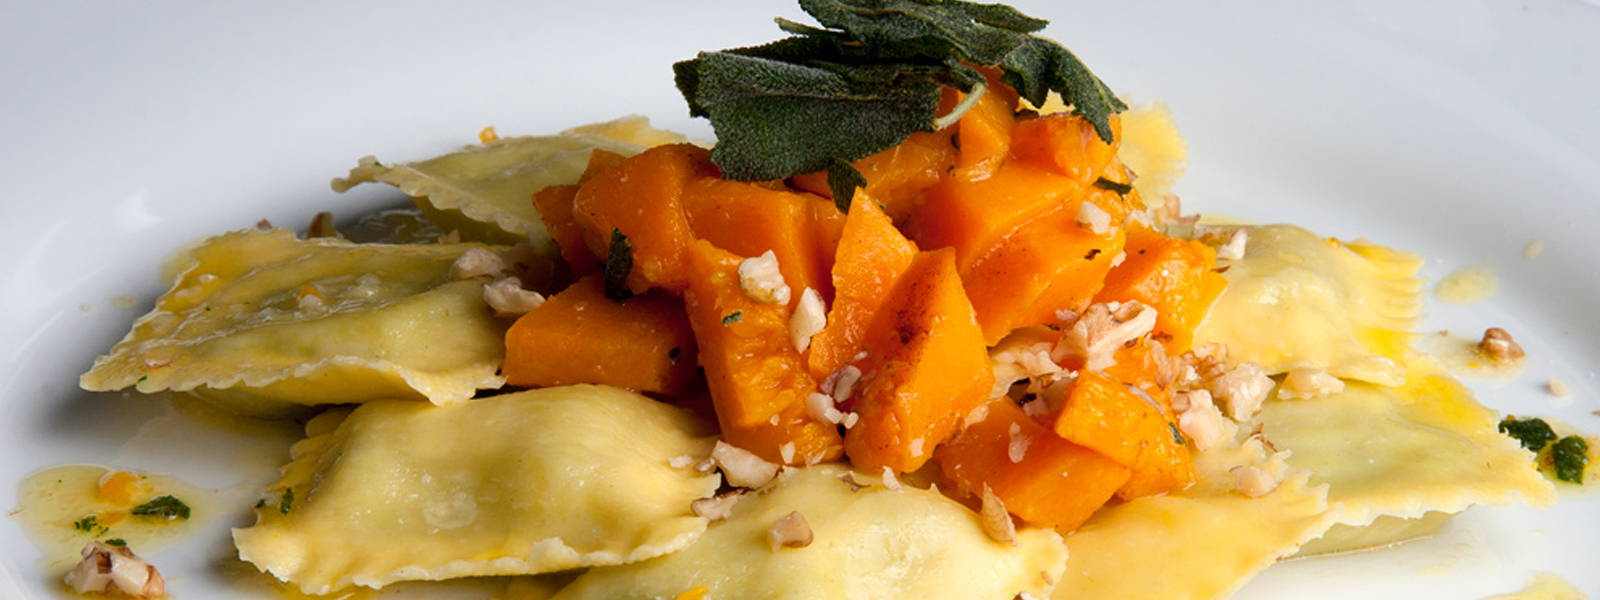 ... with butternut squash, sage, butter and walnuts | Courtesy La Sosta